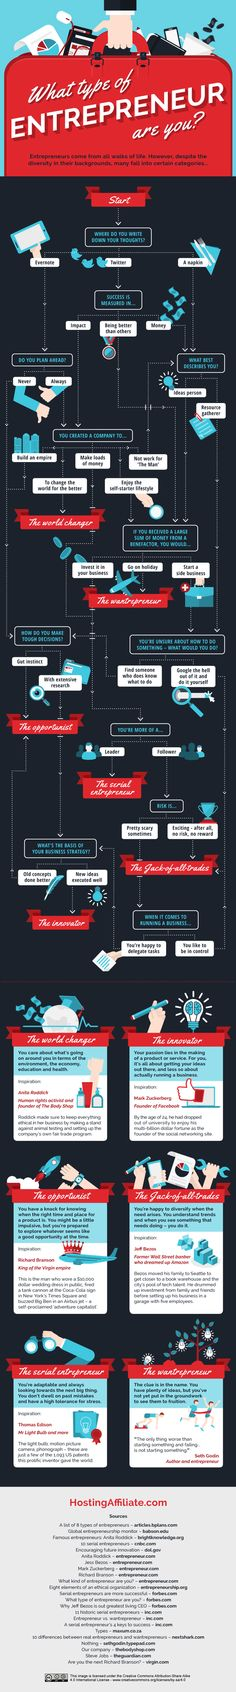 What Type of Entrepreneur are You - Business Infographic. Topic: startup, business